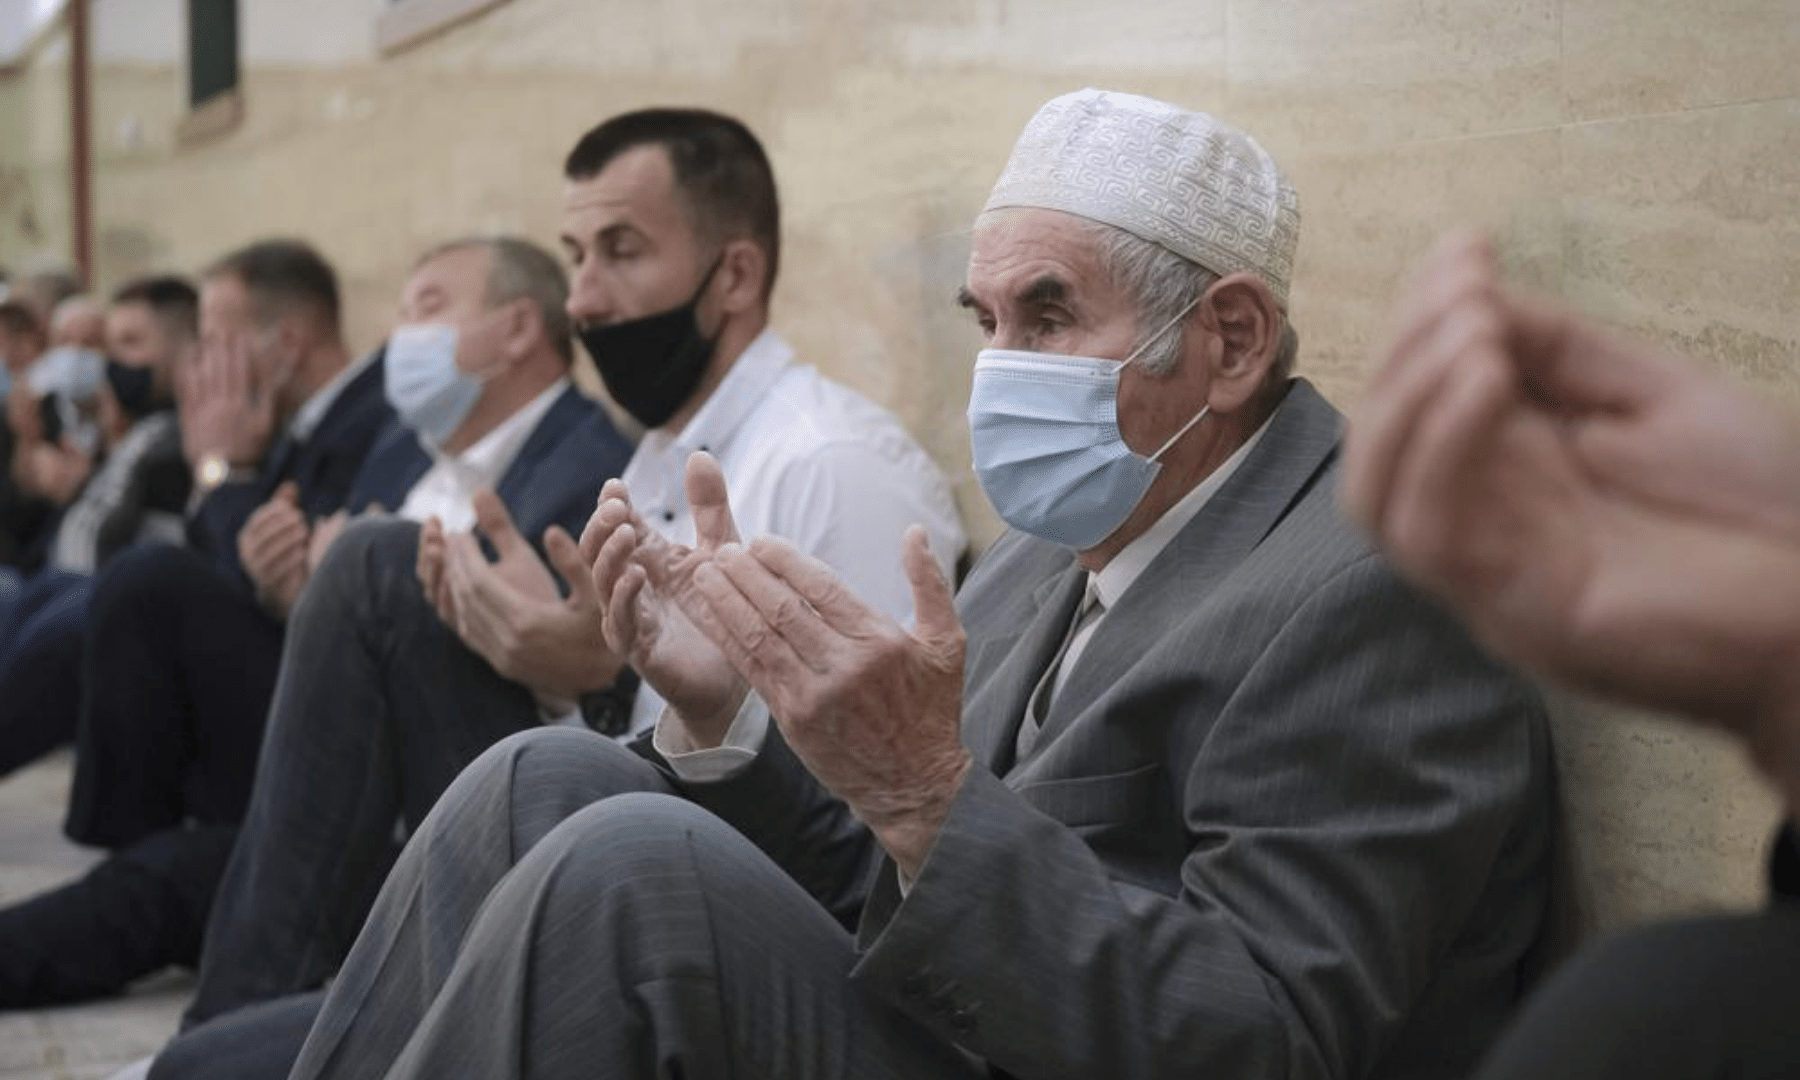 Bosnian Muslims, wearing face masks to protect themselves from Covid-19, attend Eidul Fitr prayers in Konjic, Bosnia. — AP